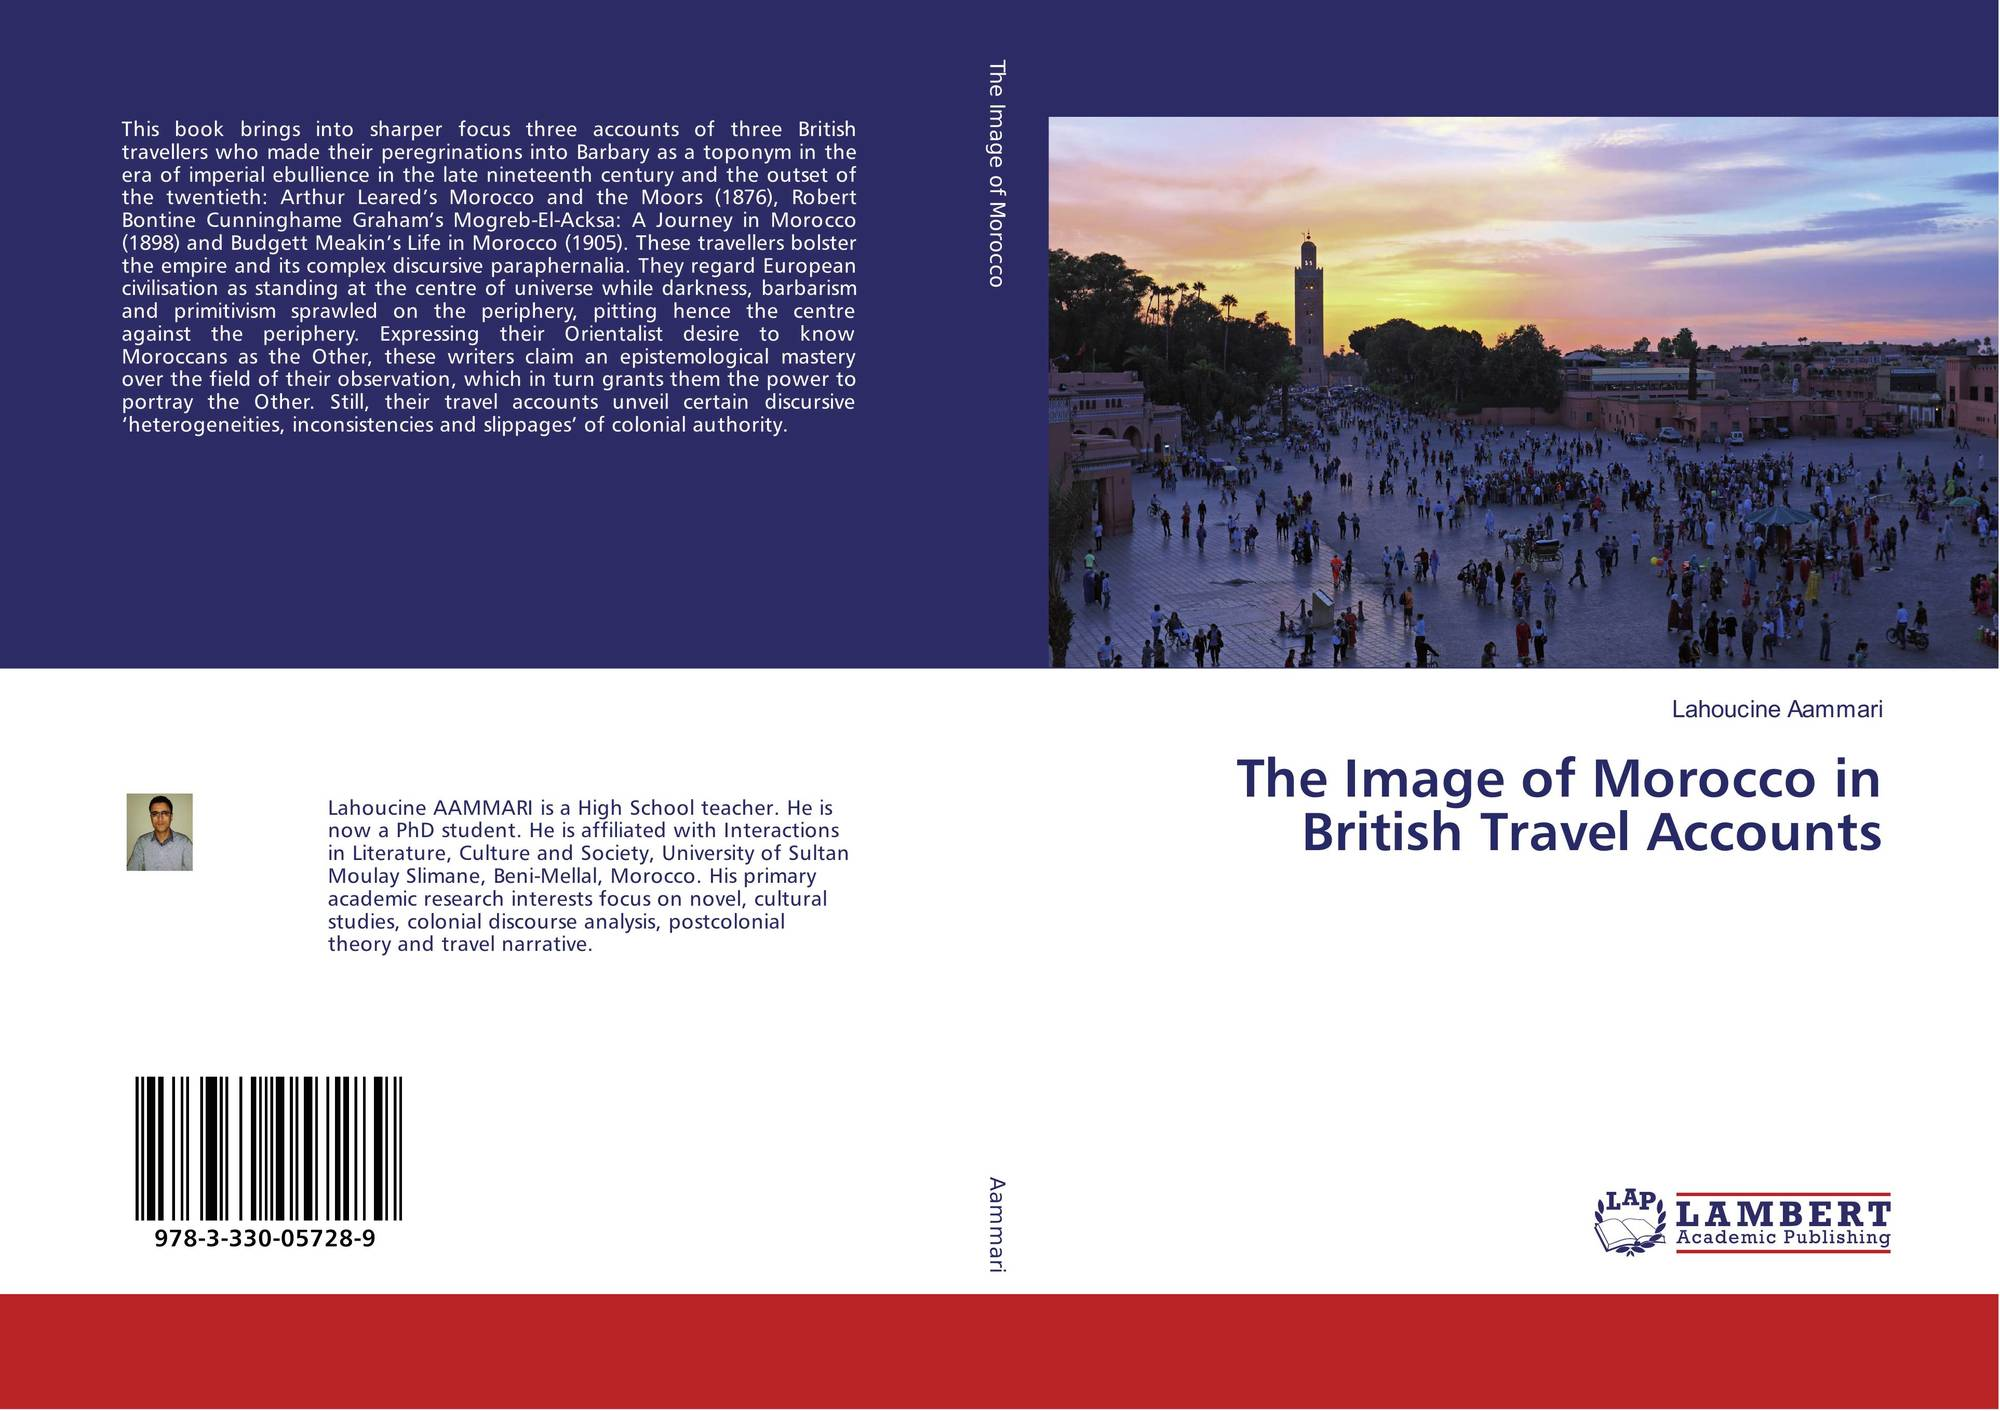 an overview of the nature and purpose of the association of british travel agents or abta The three major tour operator associations in the us are the national tour association (nta), the united states tour operators association (ustoa), and the american bus association (aba) in europe, there are the european tour operators association (etoa), and in the uk, the association of british travel agents (abta) and the association of independent tour operators (aito.